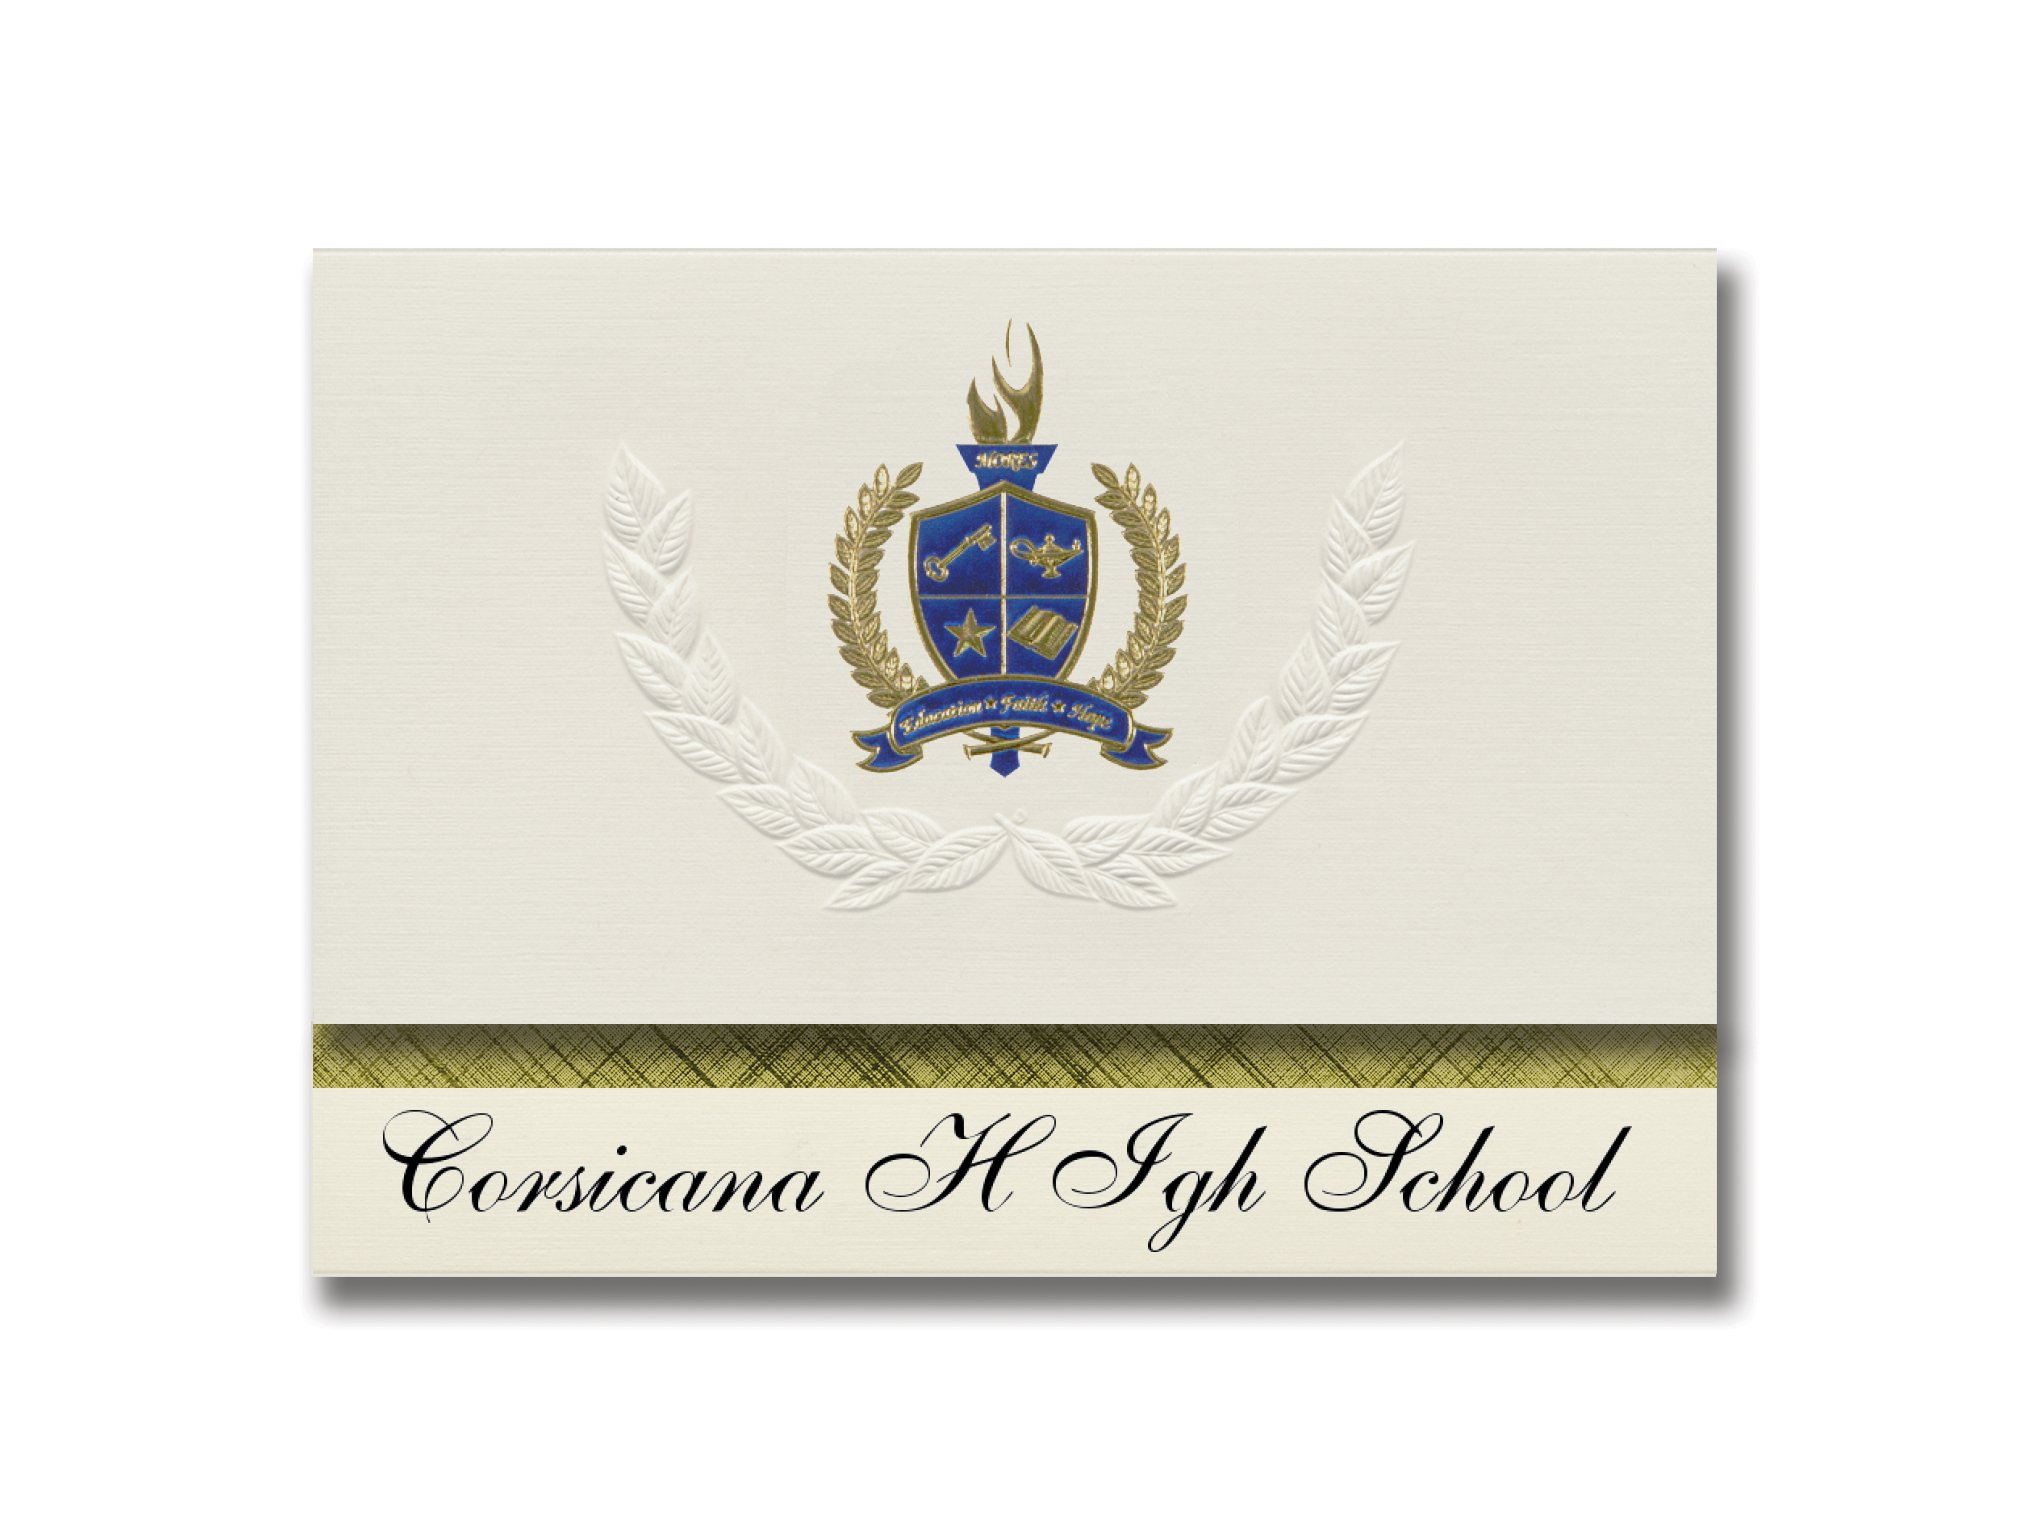 Signature Announcements Corsicana H Igh School (Corsicana, TX) Graduation Announcements, Presidential style, Elite package of 25 with Gold & Blue Metallic Foil seal